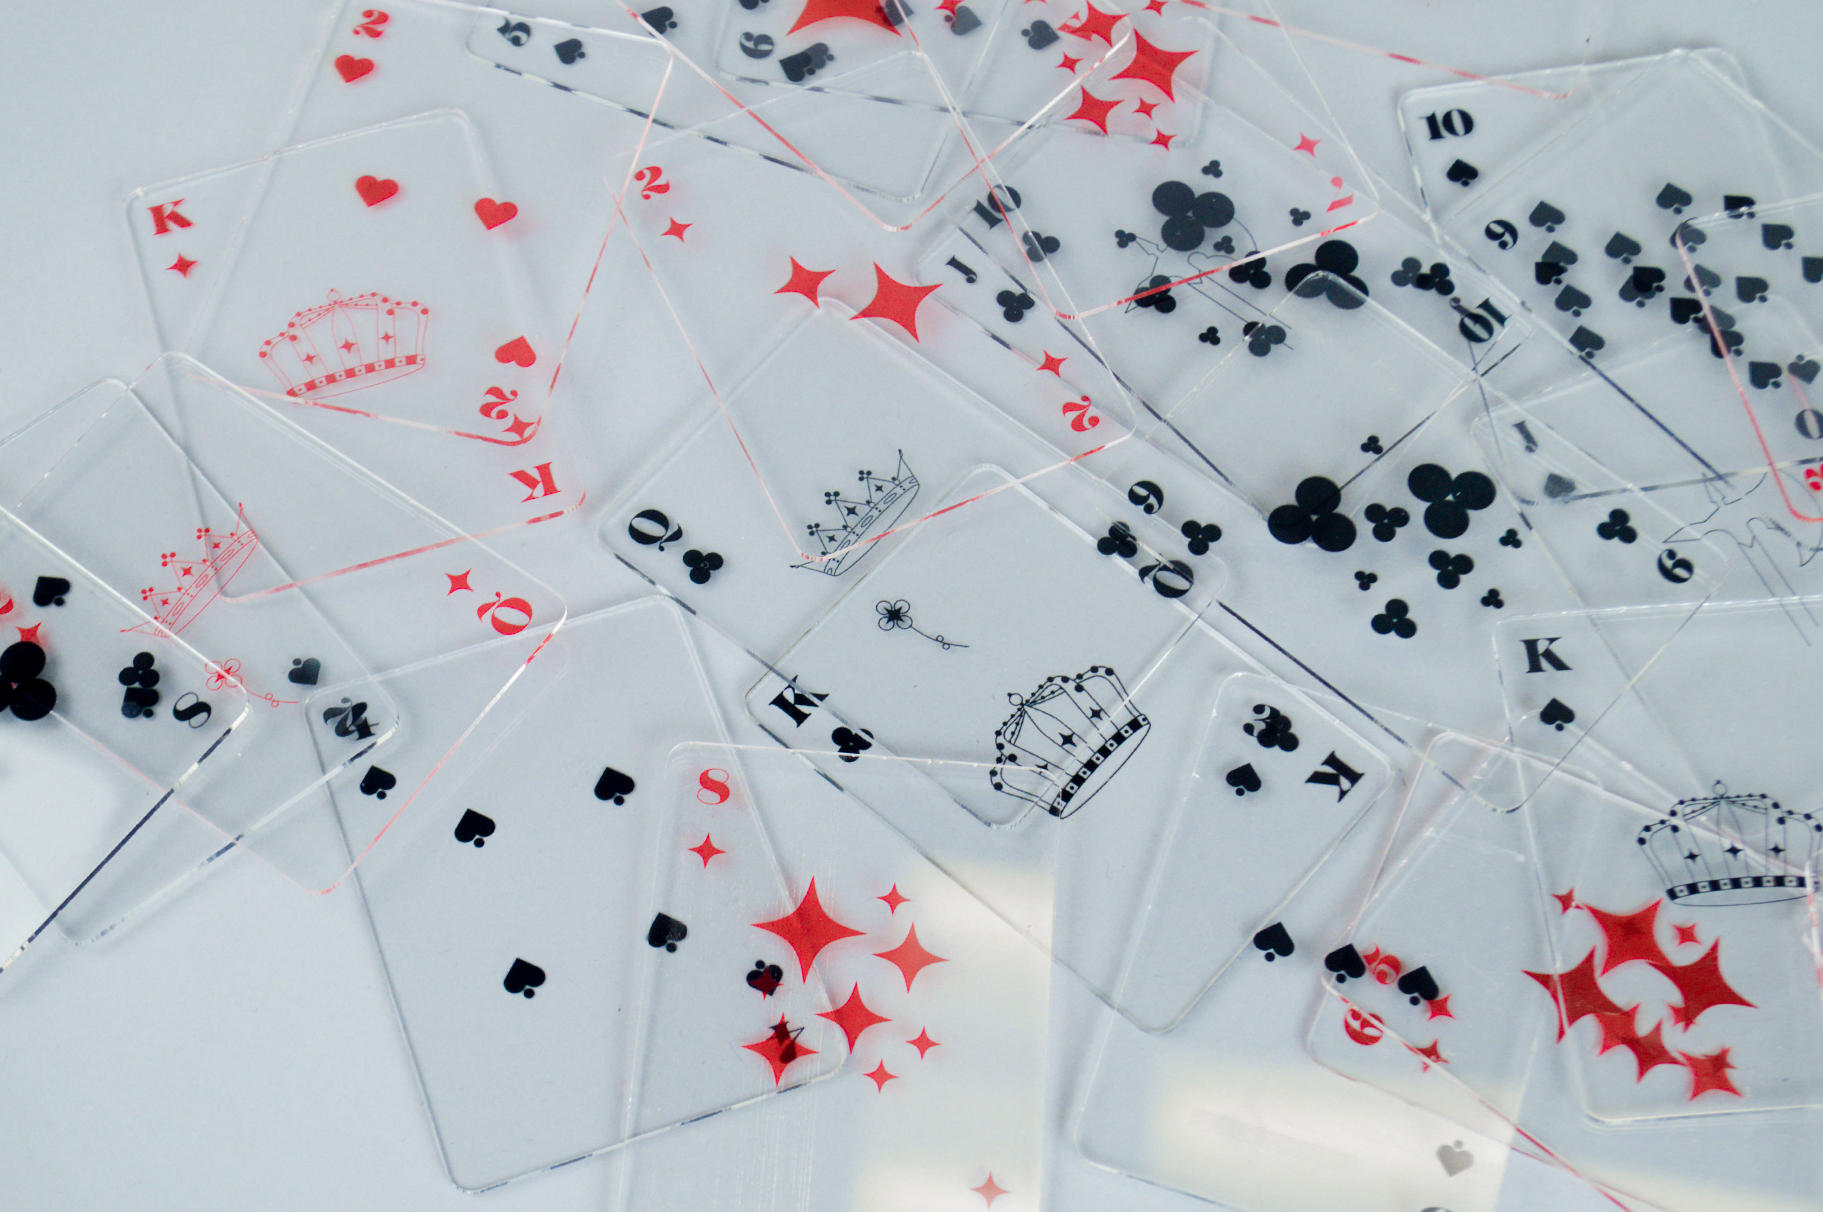 52 illustrative playing cards, made to always win...or lose